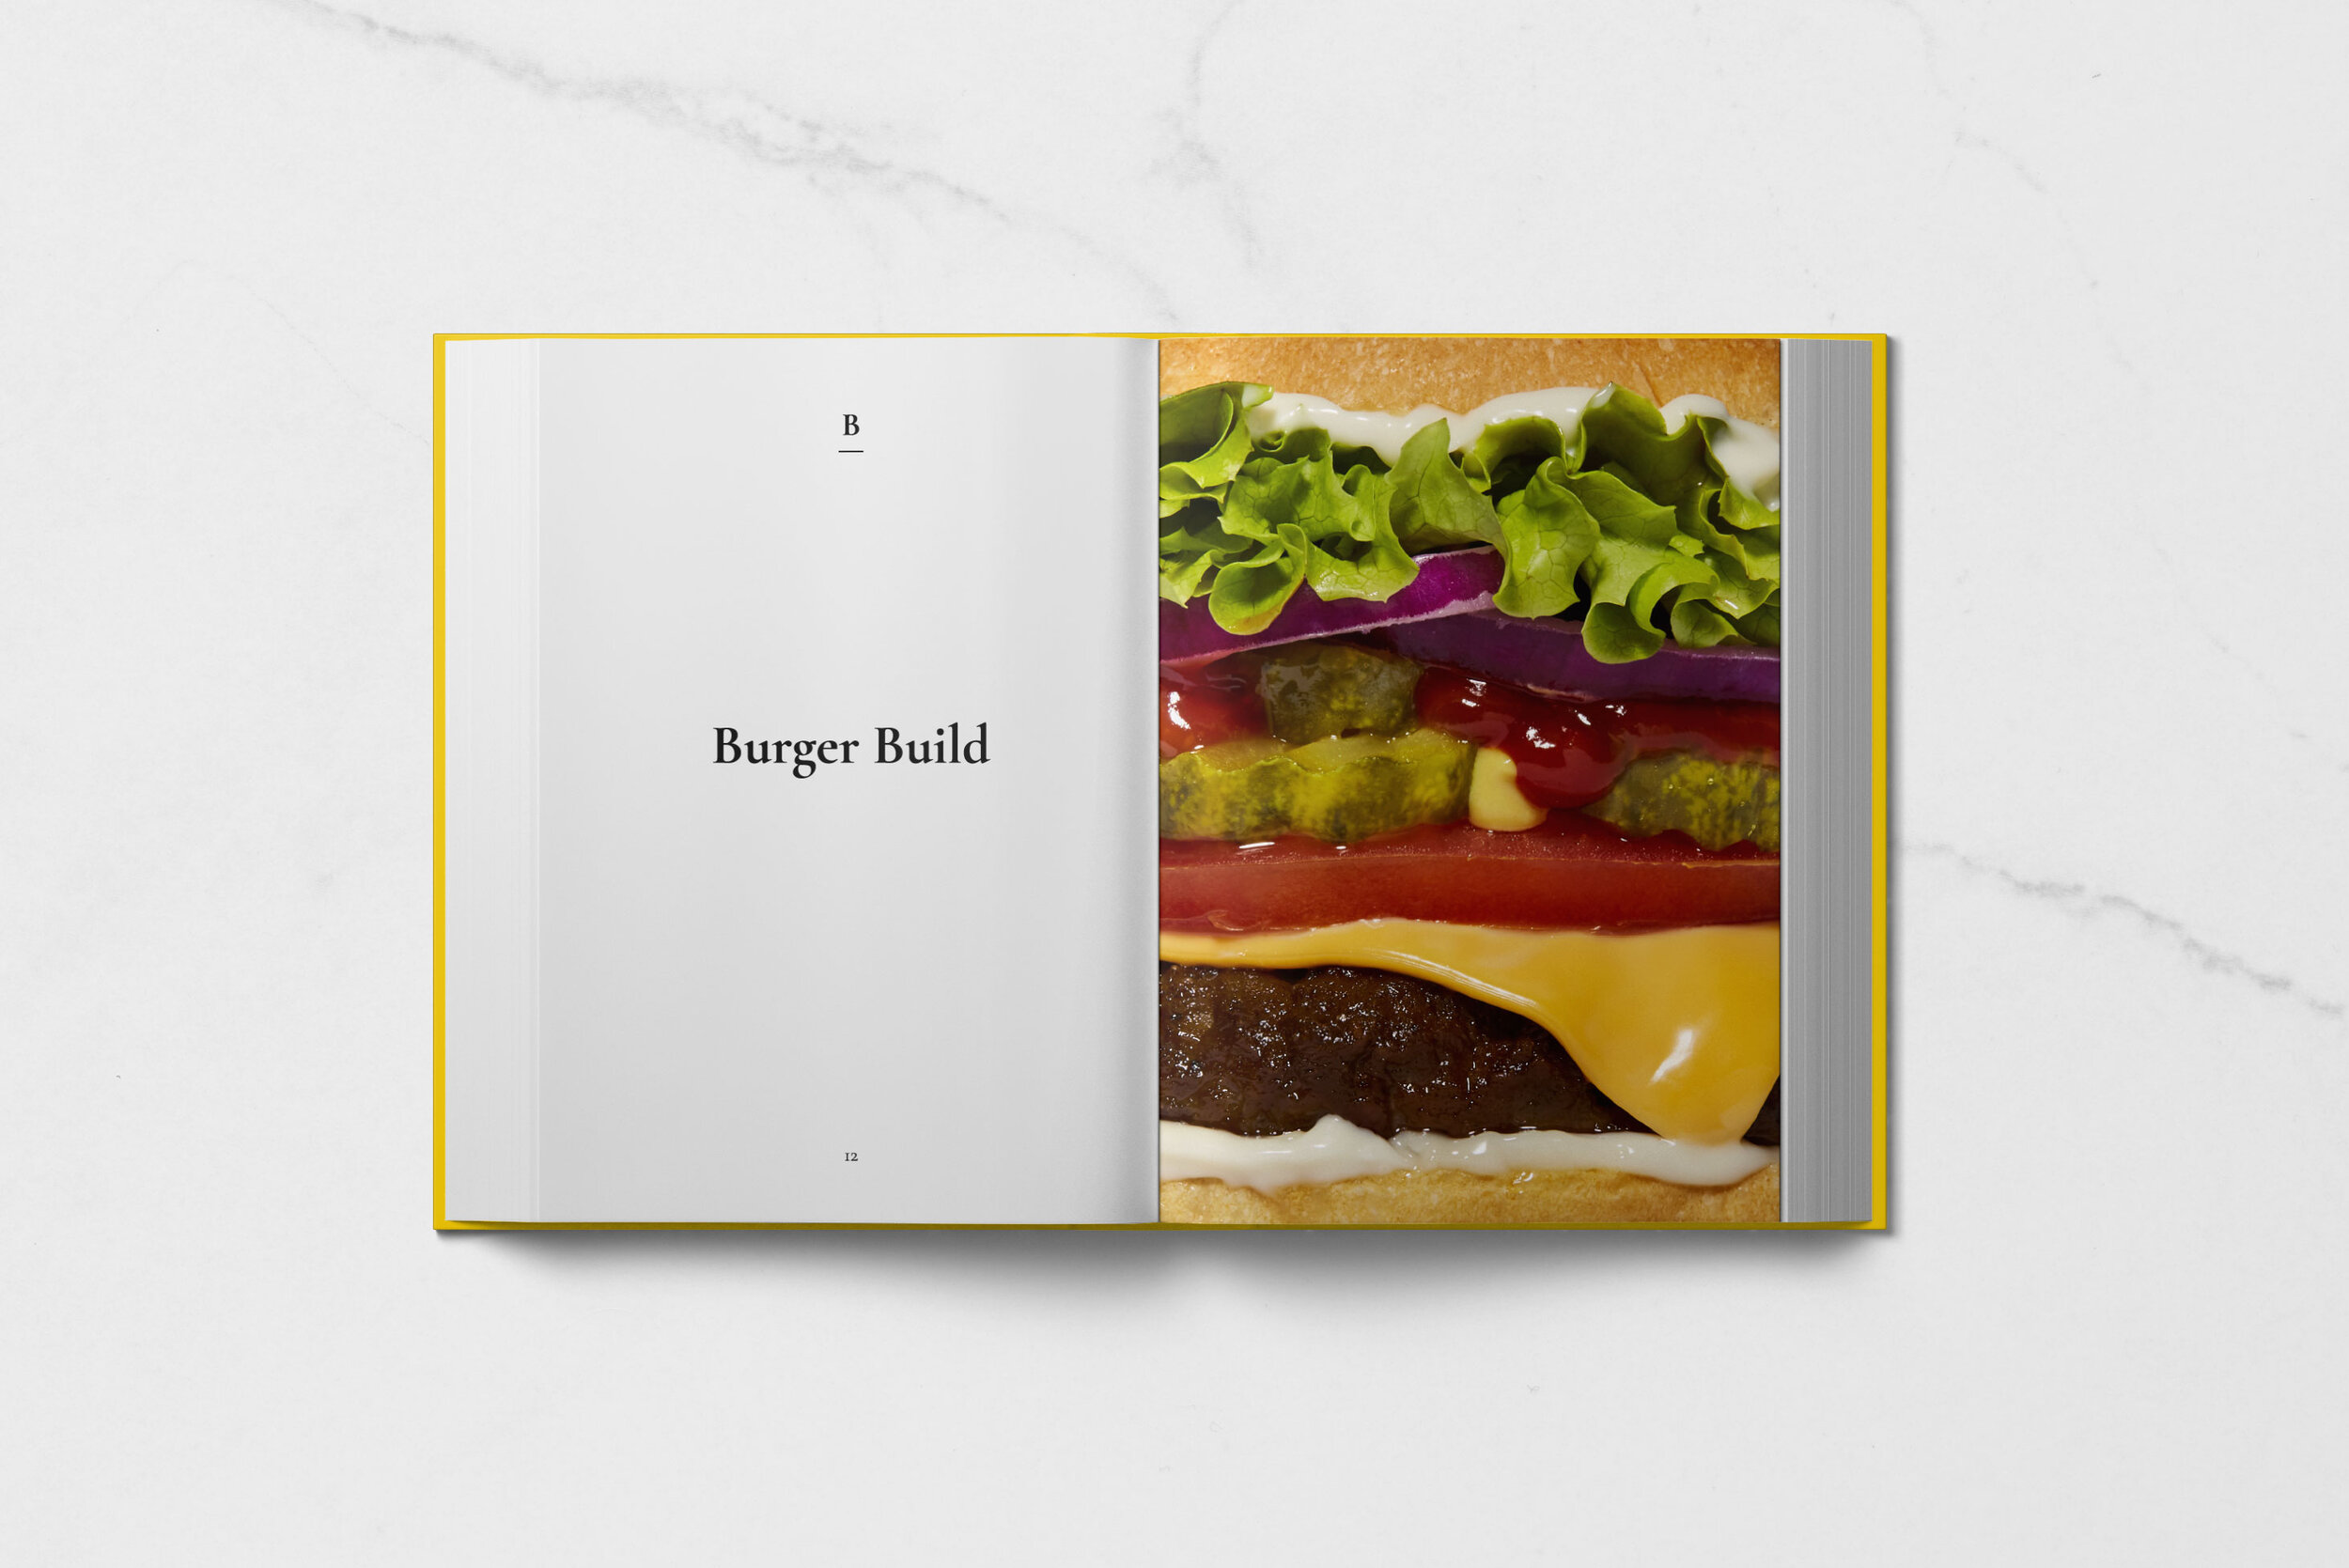 Lucy Ruth Hathaway The Food Styling Encyclopaedia, food photography art book, commercial food stylist, commercial food photography, food stylist tricks, food styling photography vocabulary, food artist, burger styling